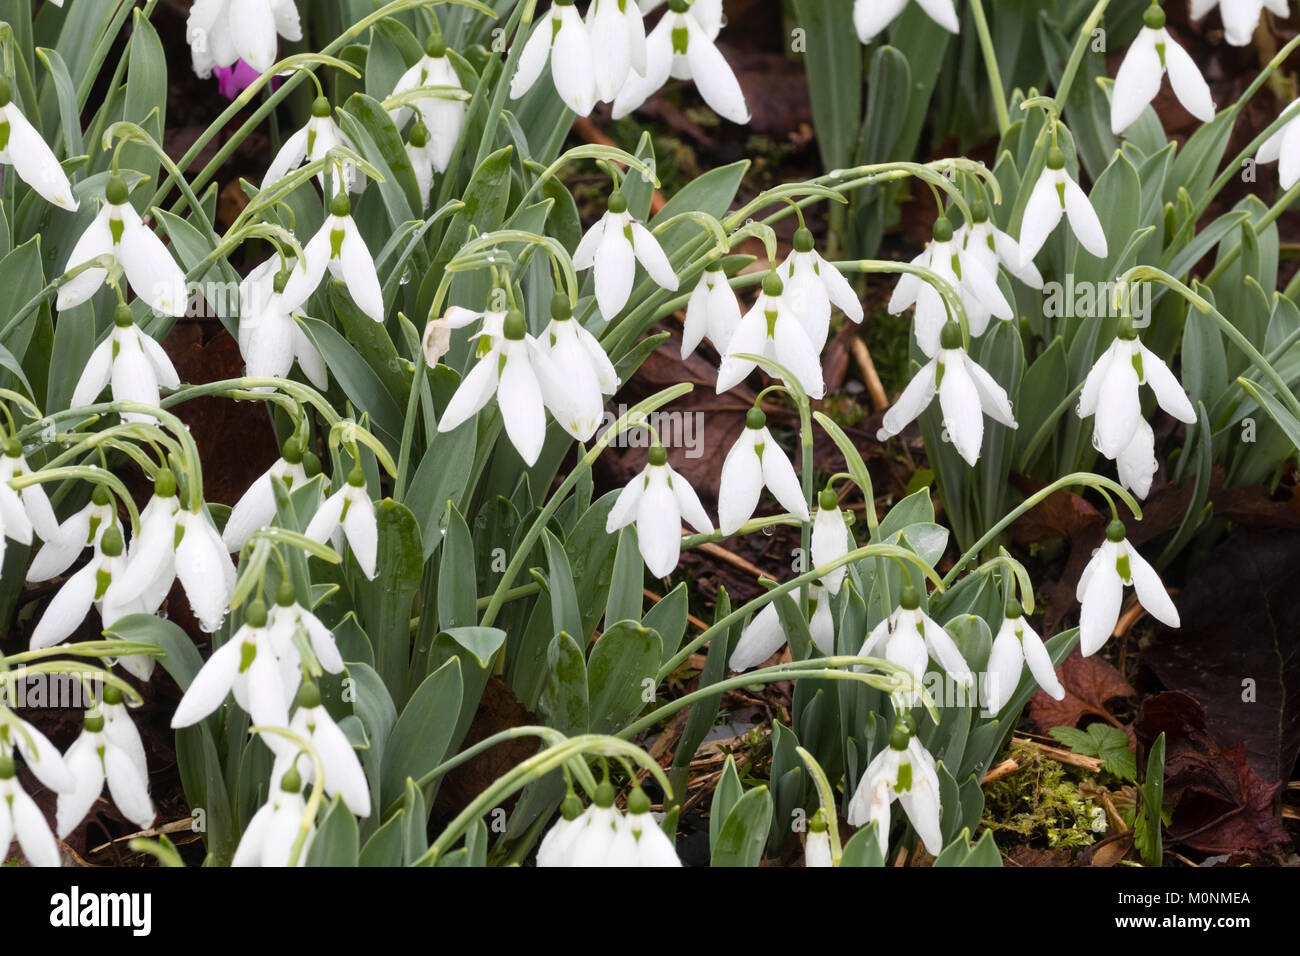 Massed display of the collector's giant snowdrop, Galanthus elwesii 'Sickle' in mid winter - Stock Image